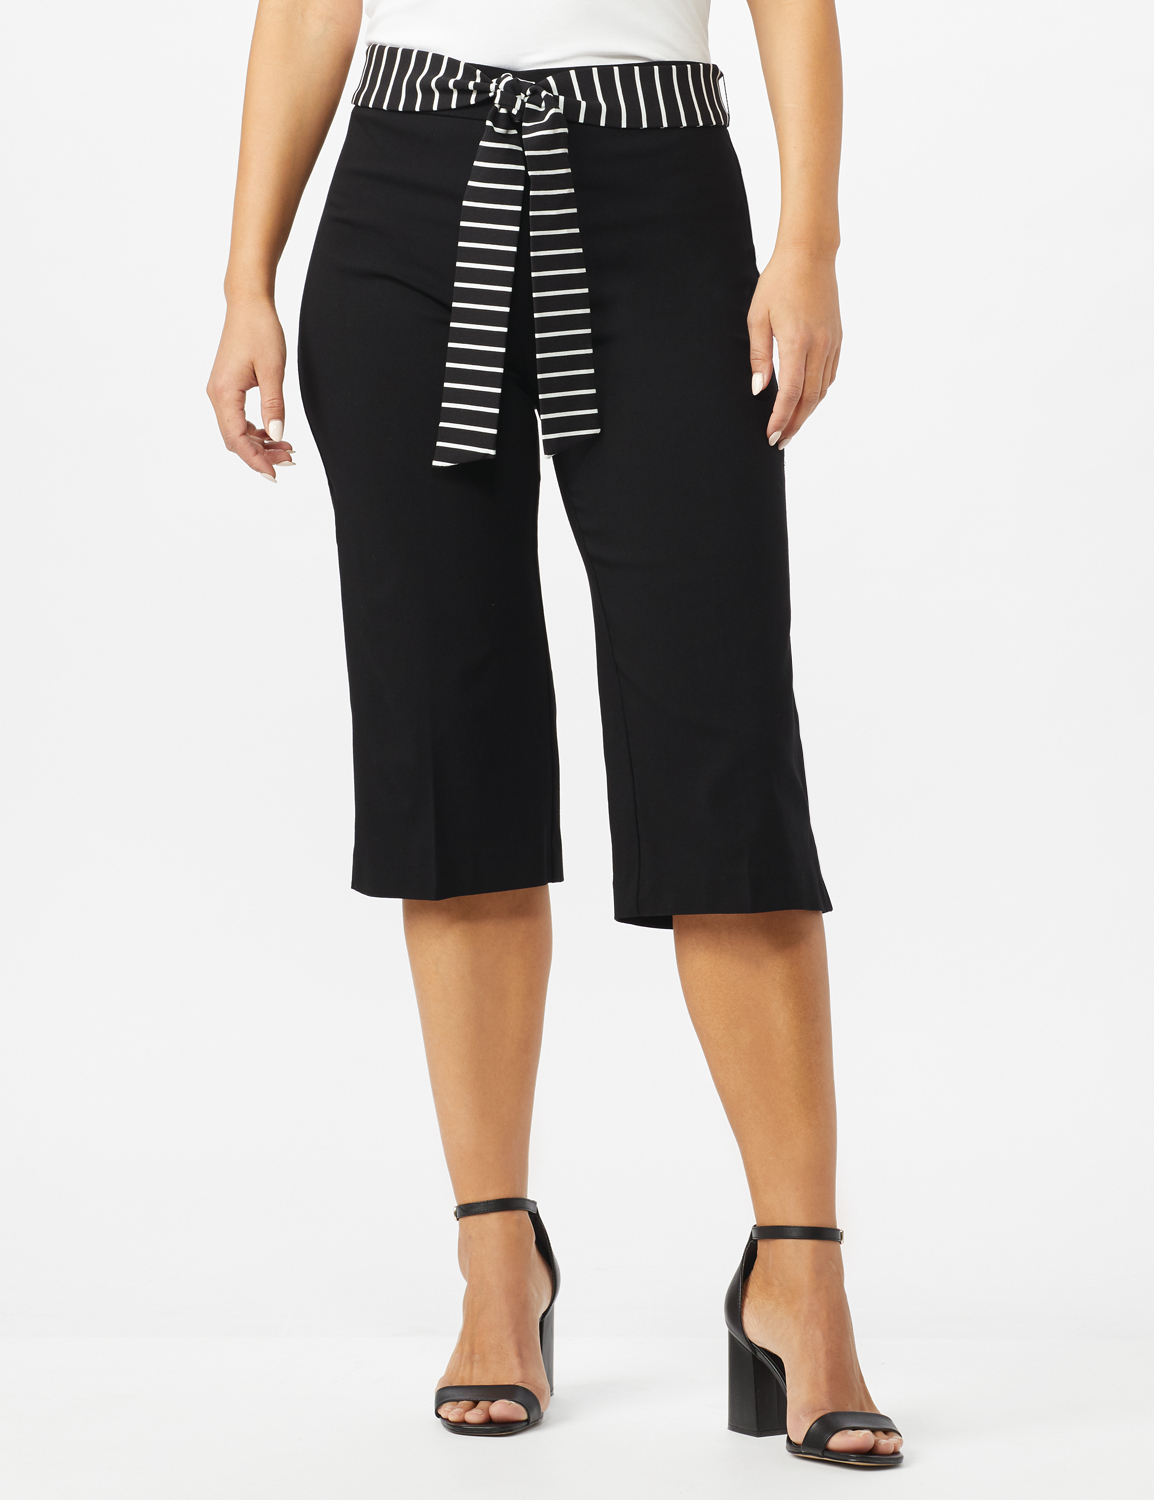 Pull On Crop Pants With Printed Tie Sash -Black - Front